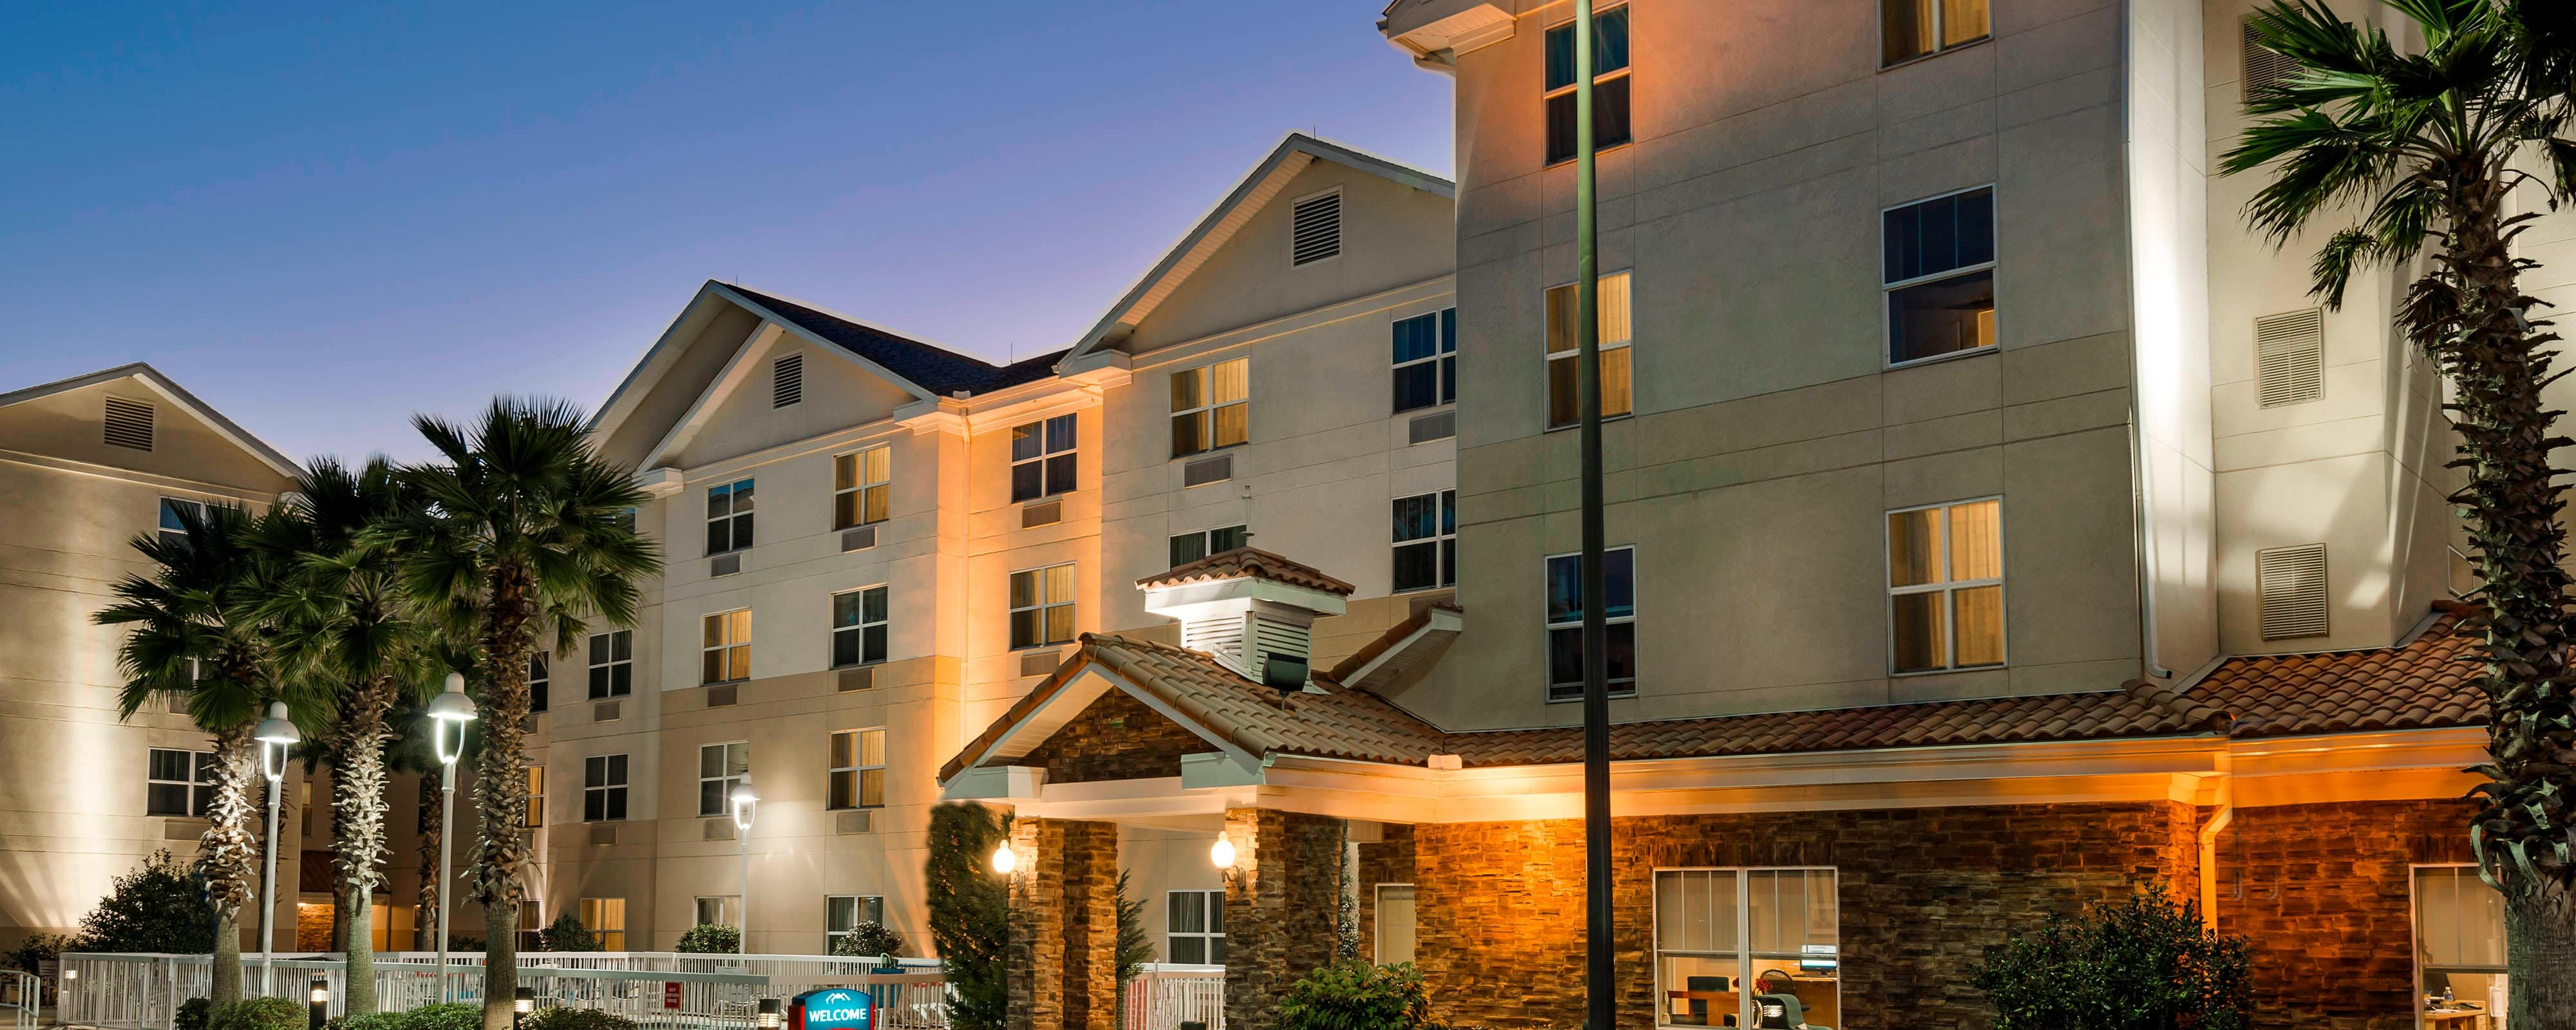 Hotels in Pensacola FL | TownePlace Suites Pensacola